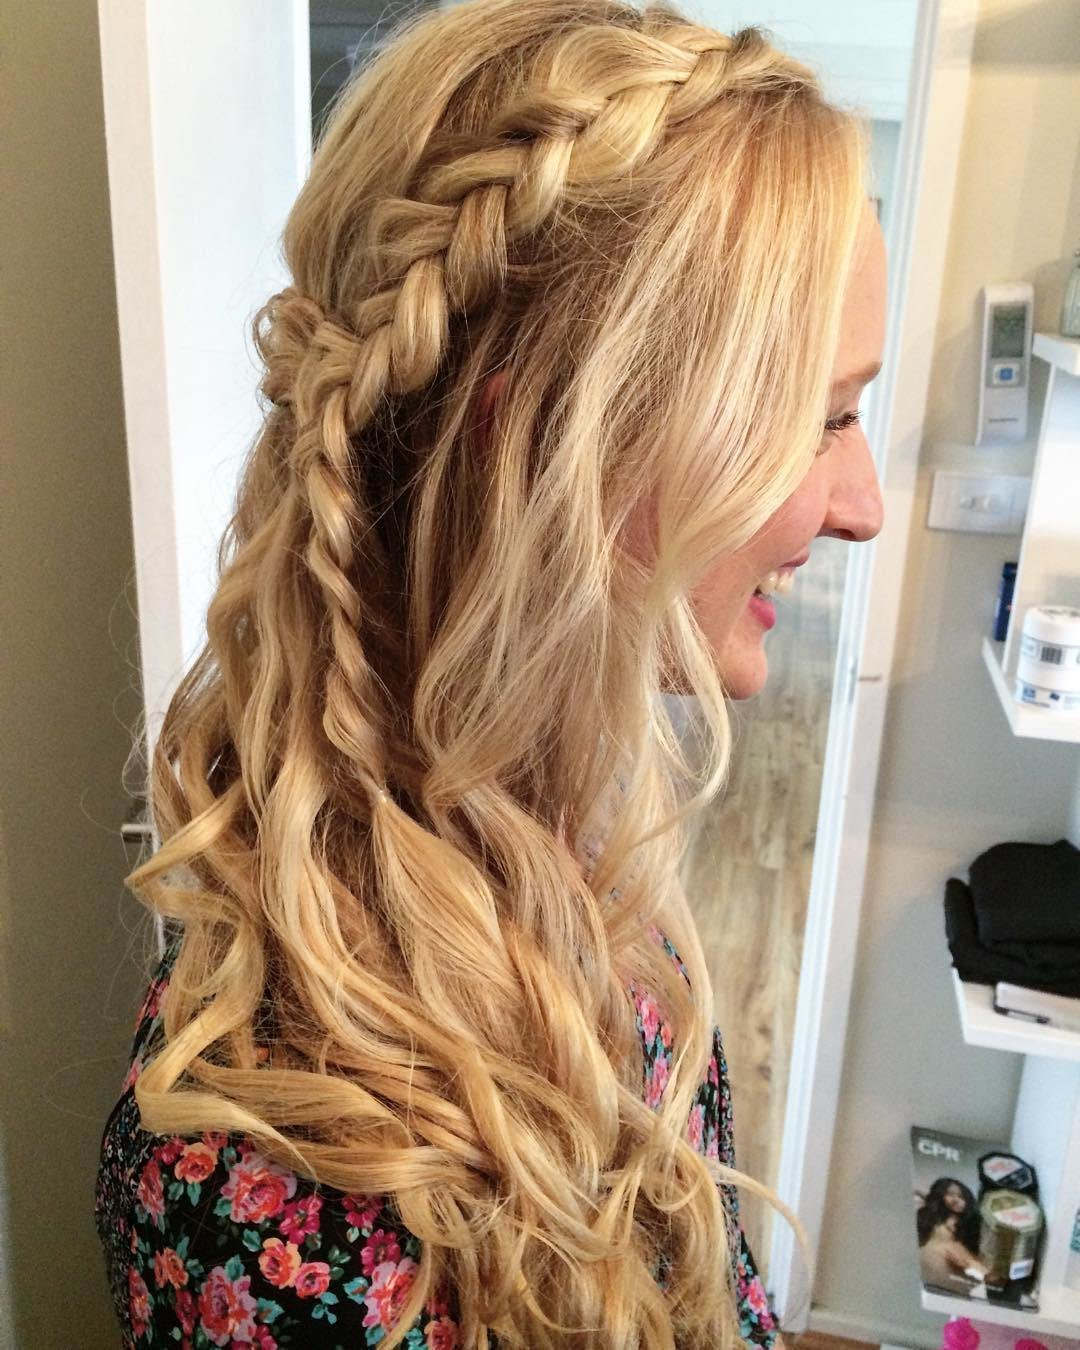 The Best 26 Awesome Braided Hairstyle For Girls Design Trends Pictures